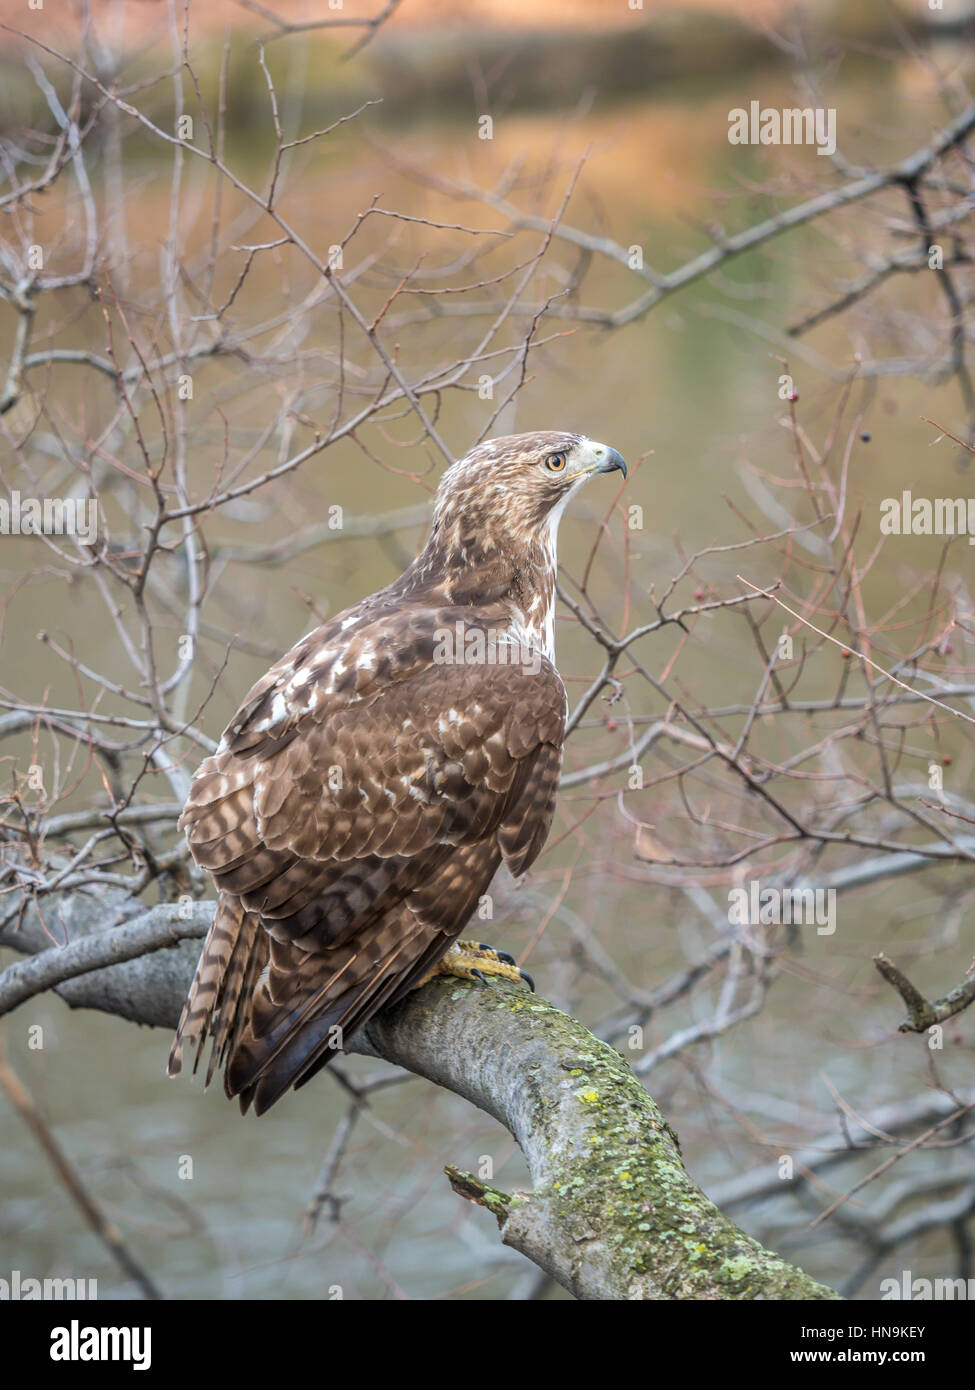 Red Tailed Hawk Buteo Jamaicensis Is A Bird Of Prey In Central Park Stock Photo 133593235 Alamy